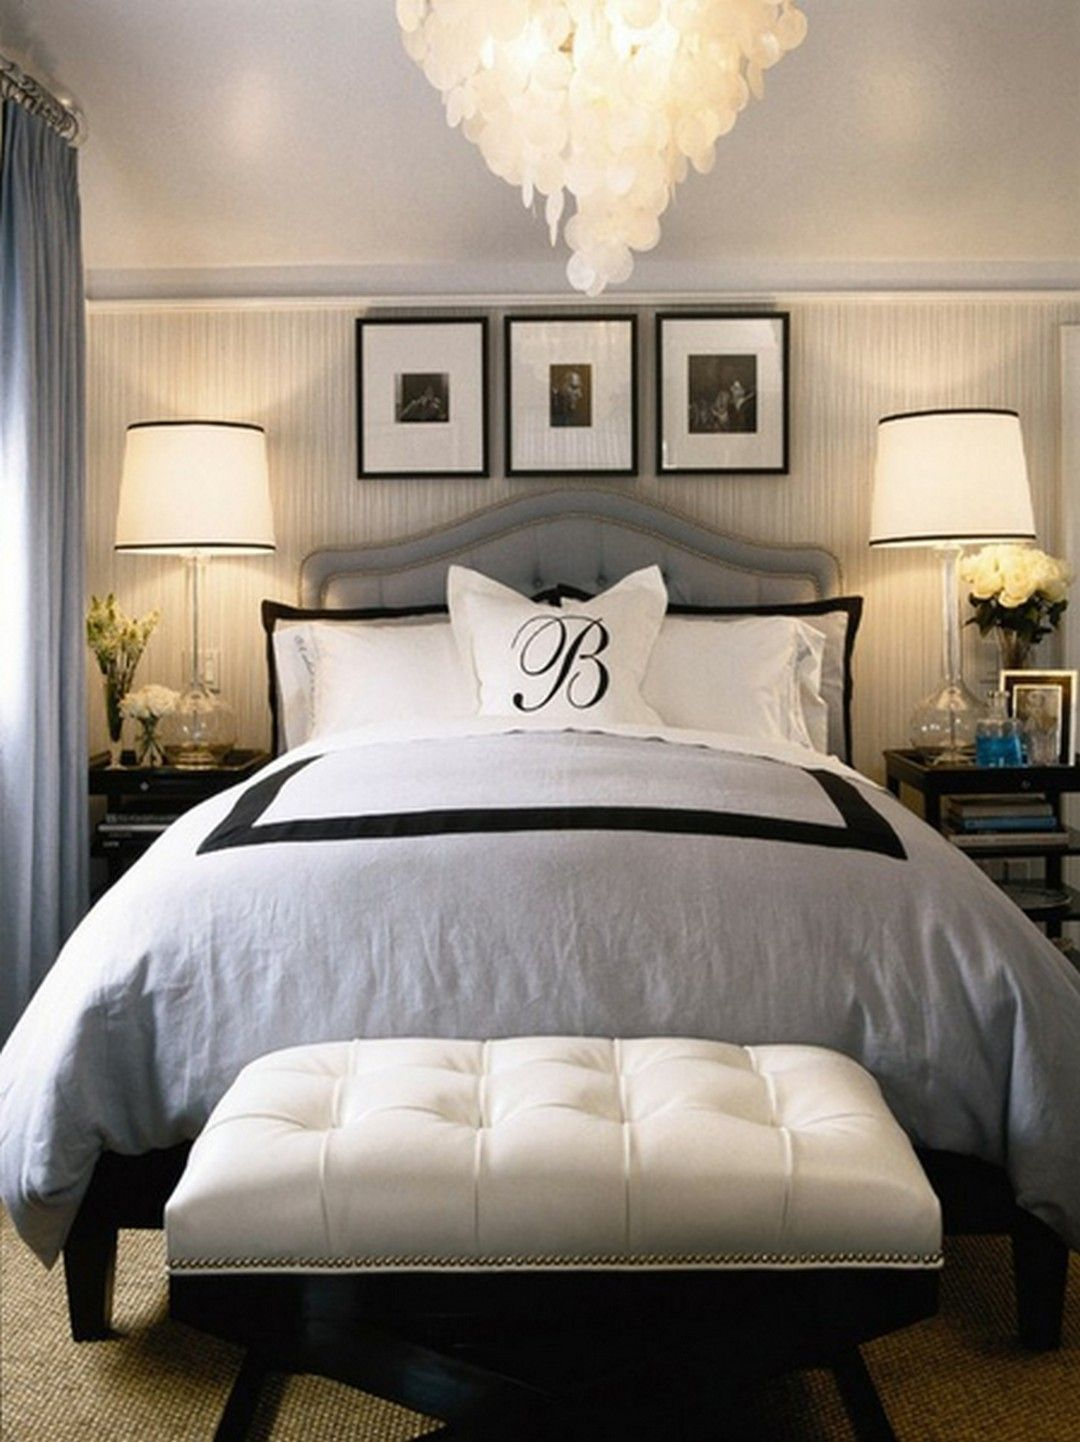 49 Small Master Bedroom Makeover Ideas on a Budget | Bedroom ...